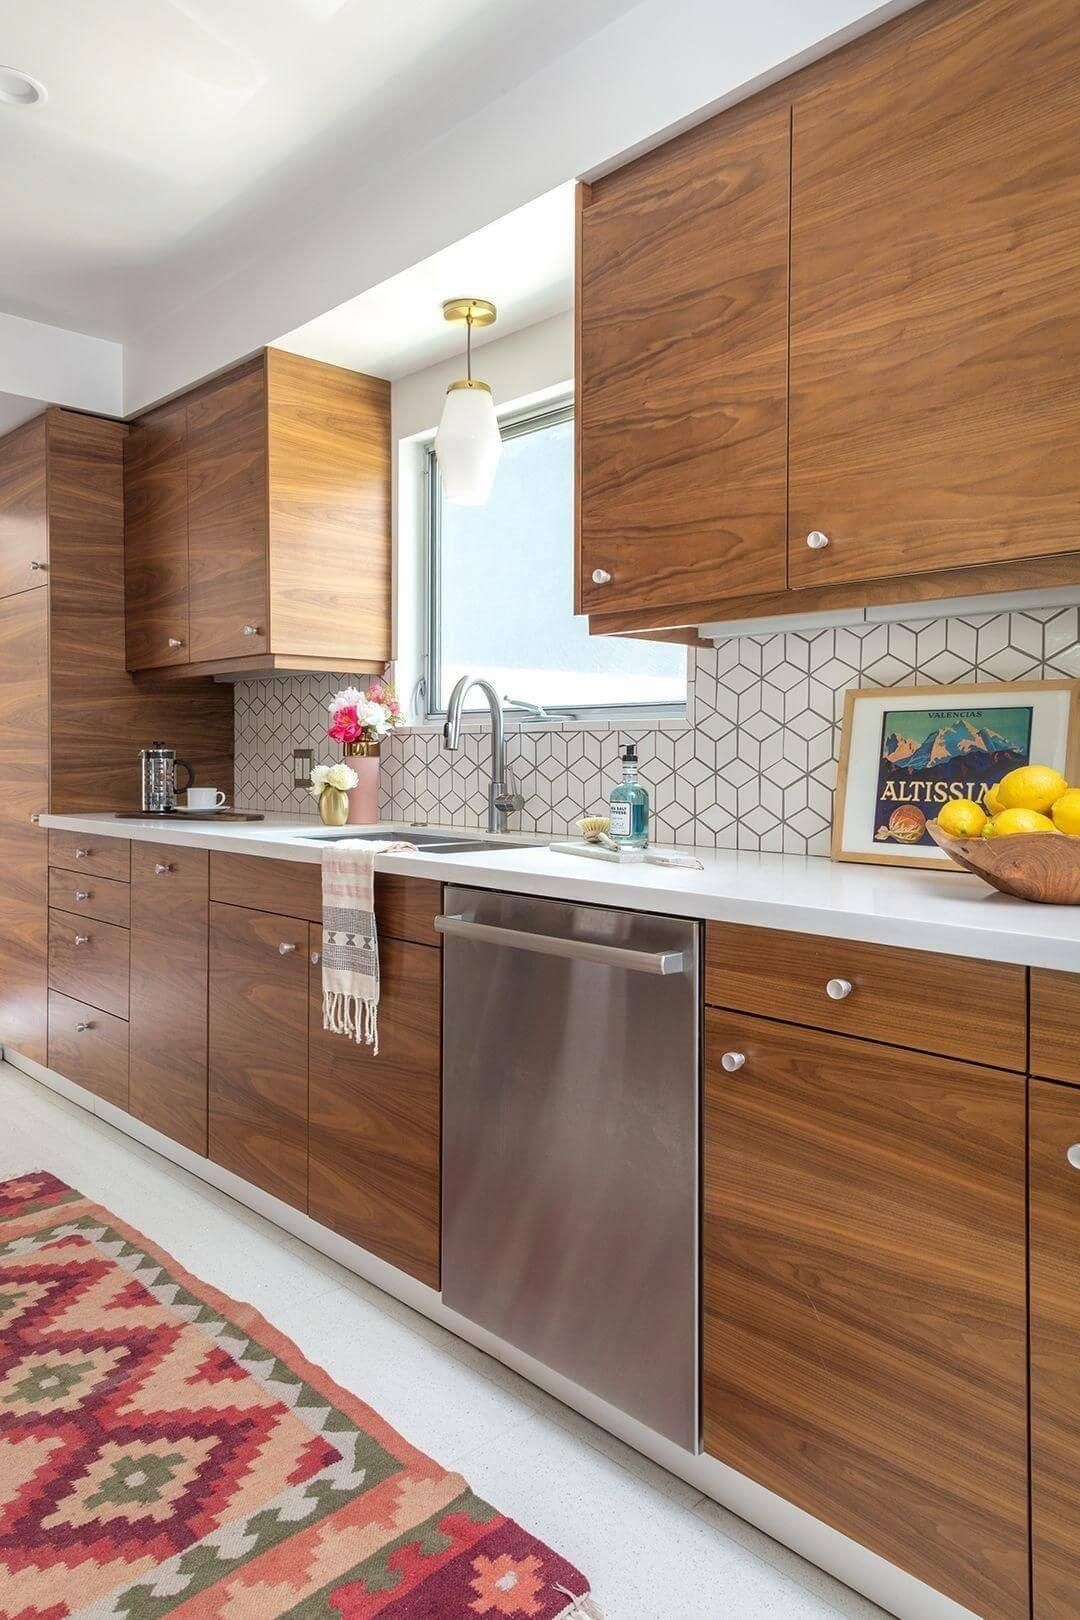 25 Mid Century Modern Kitchen Ideas To Beautify Your Cooking Area - C10F771B6604575660E66C9A82Af8Ed8